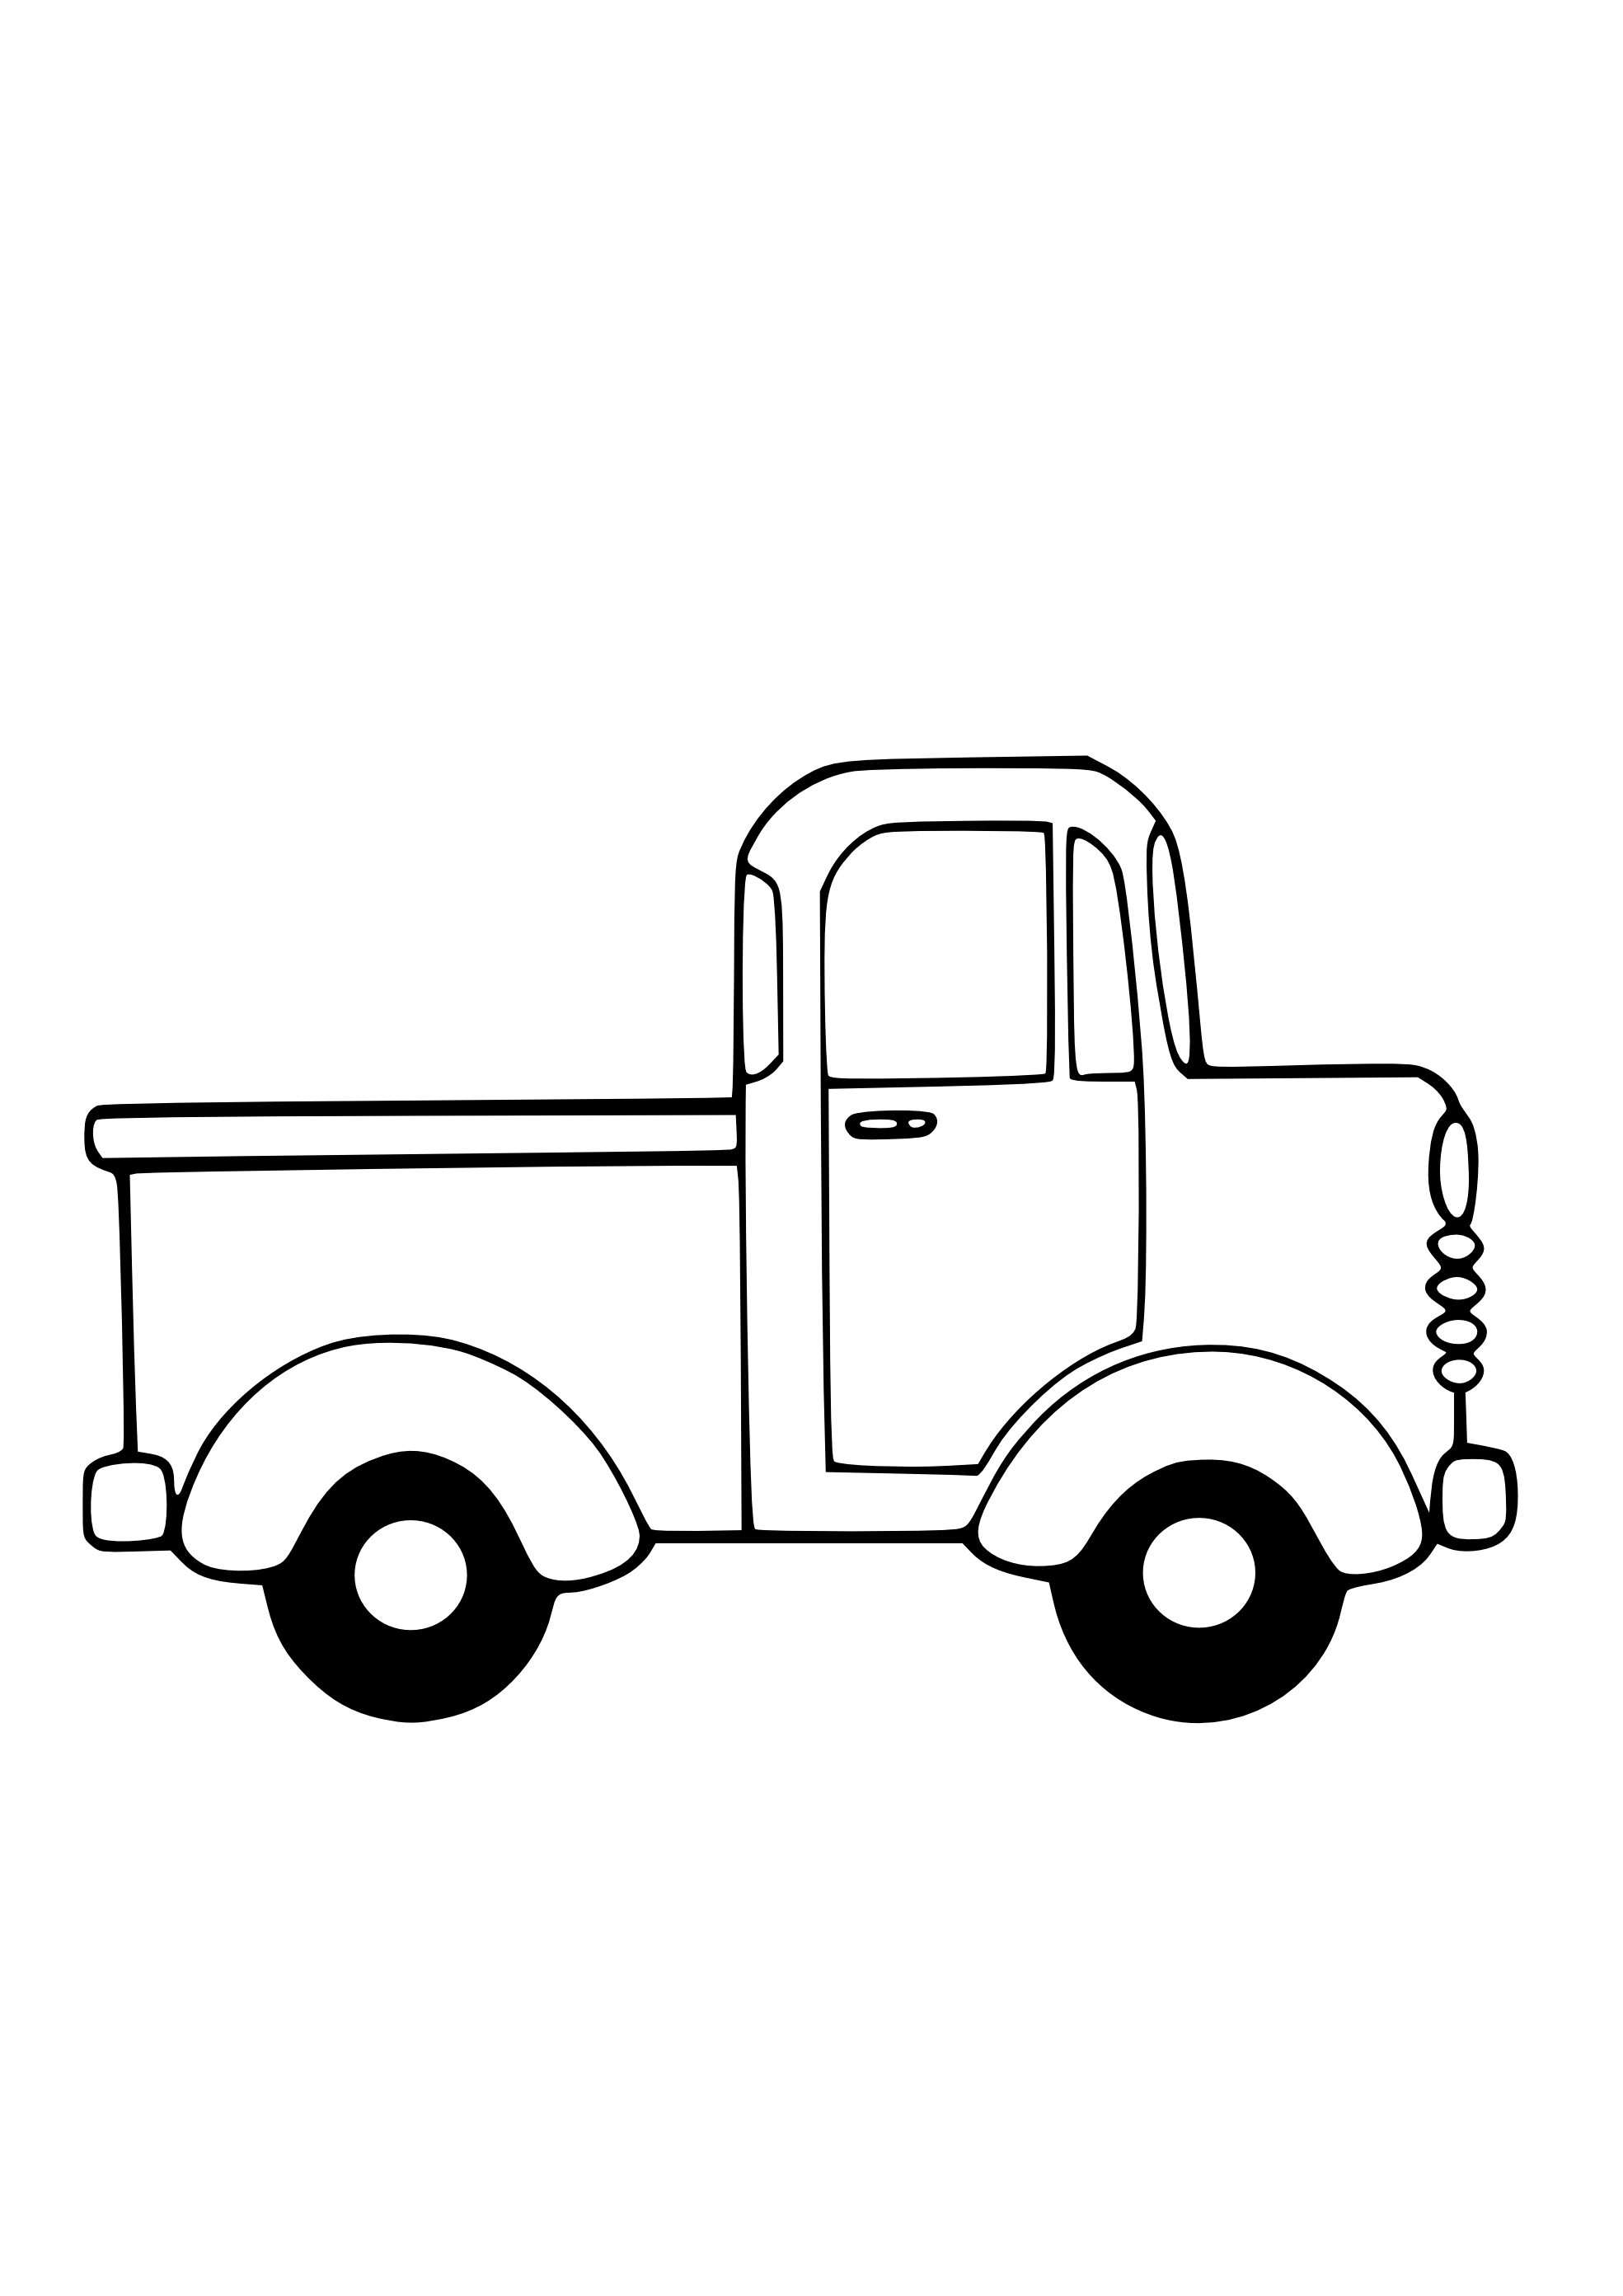 truck clipart black and white clipart panda free clipart images rh clipartpanda com garbage truck clipart black and white dump truck clipart black and white